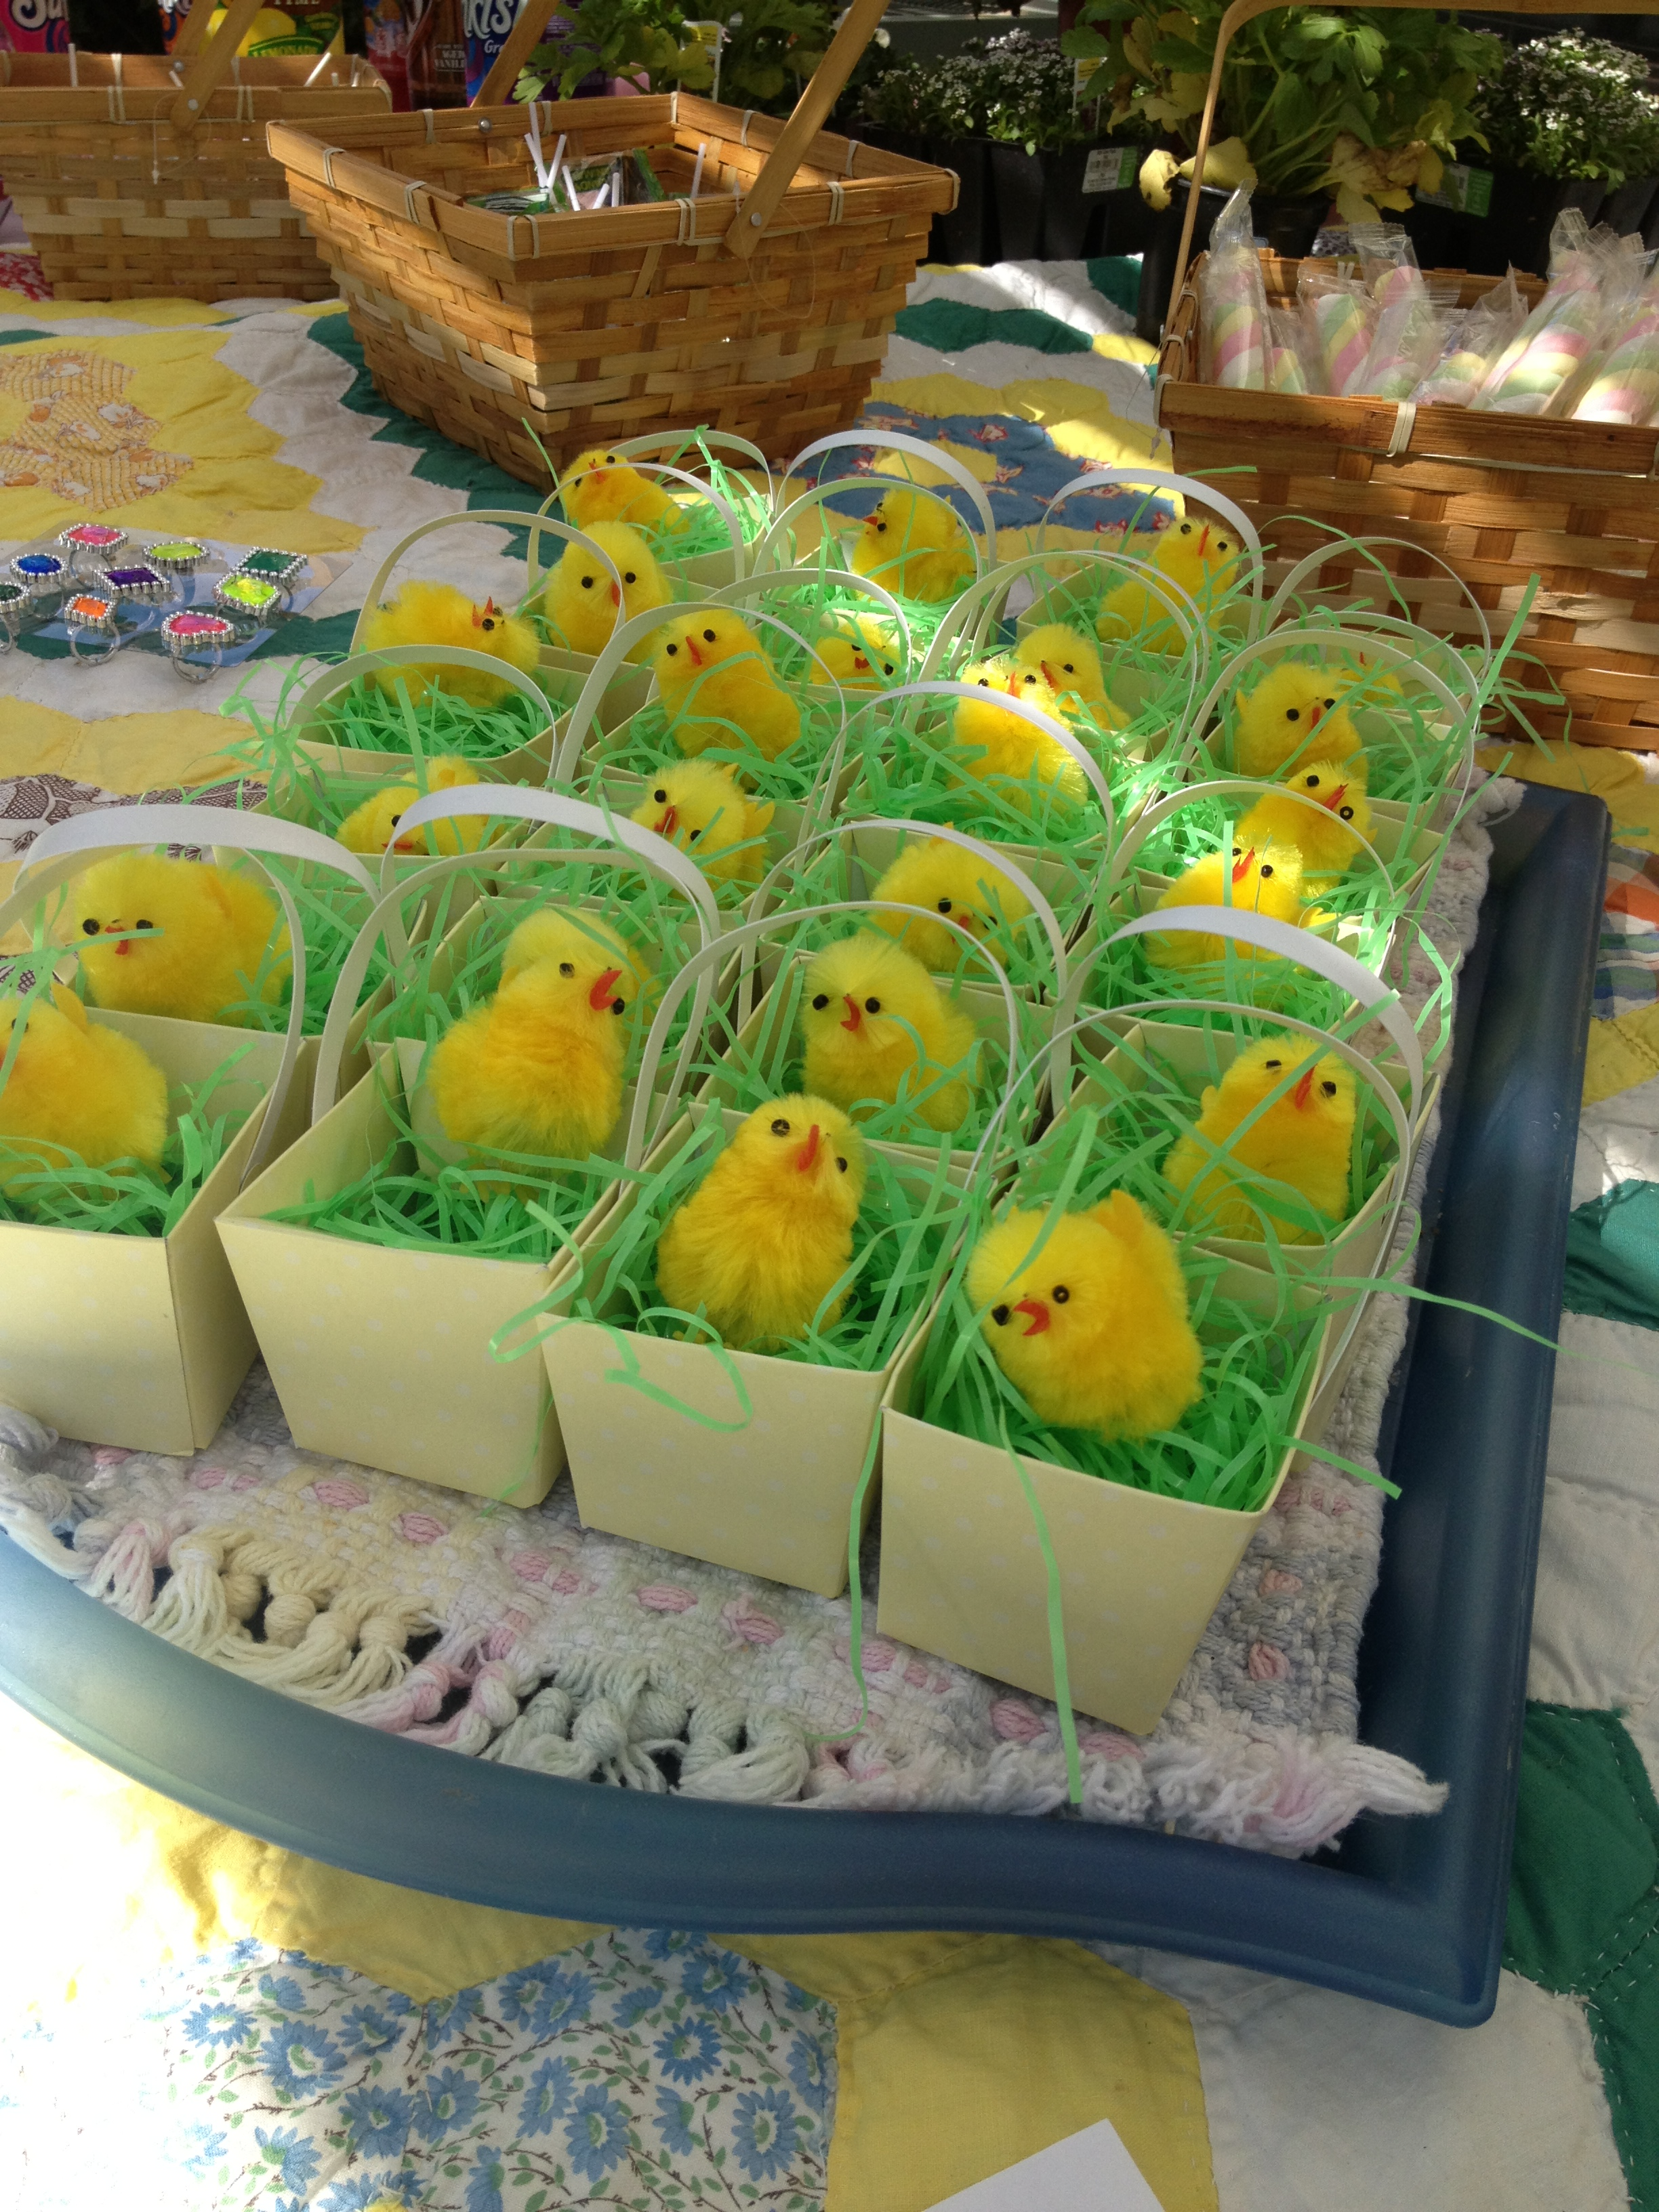 Chicks in the grass! these little cuties nested in Easter grass and dollar tree boxes...